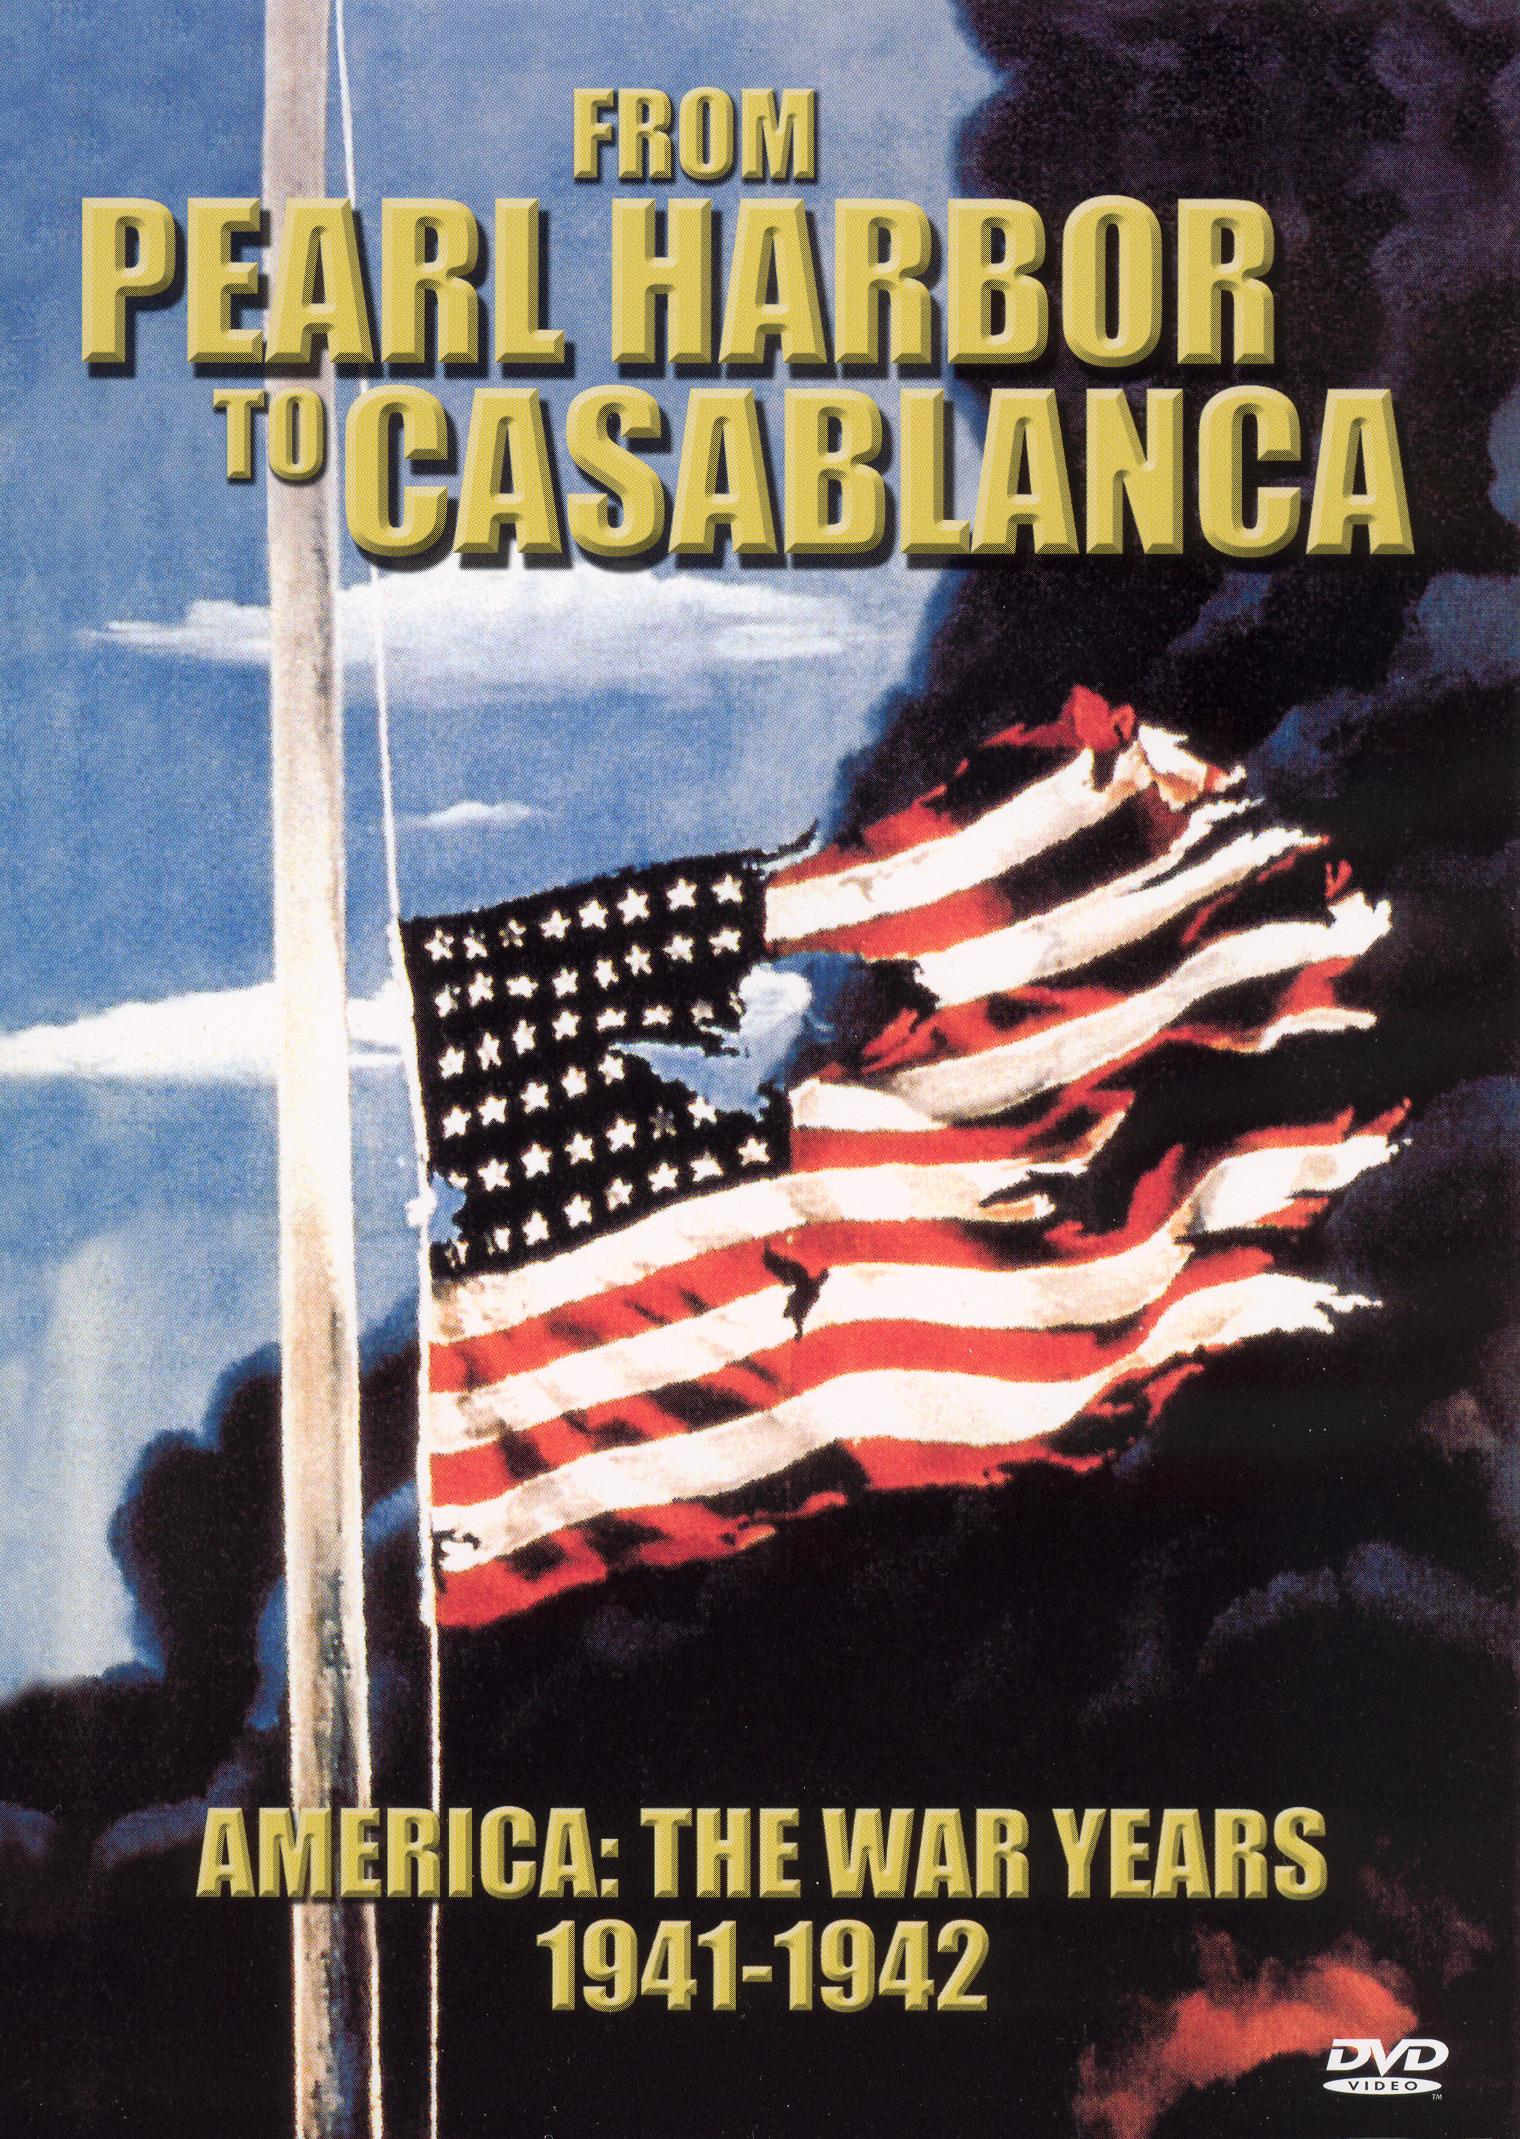 America: The War Years, 1941-1942 - From Pearl Harbor to Casablanca